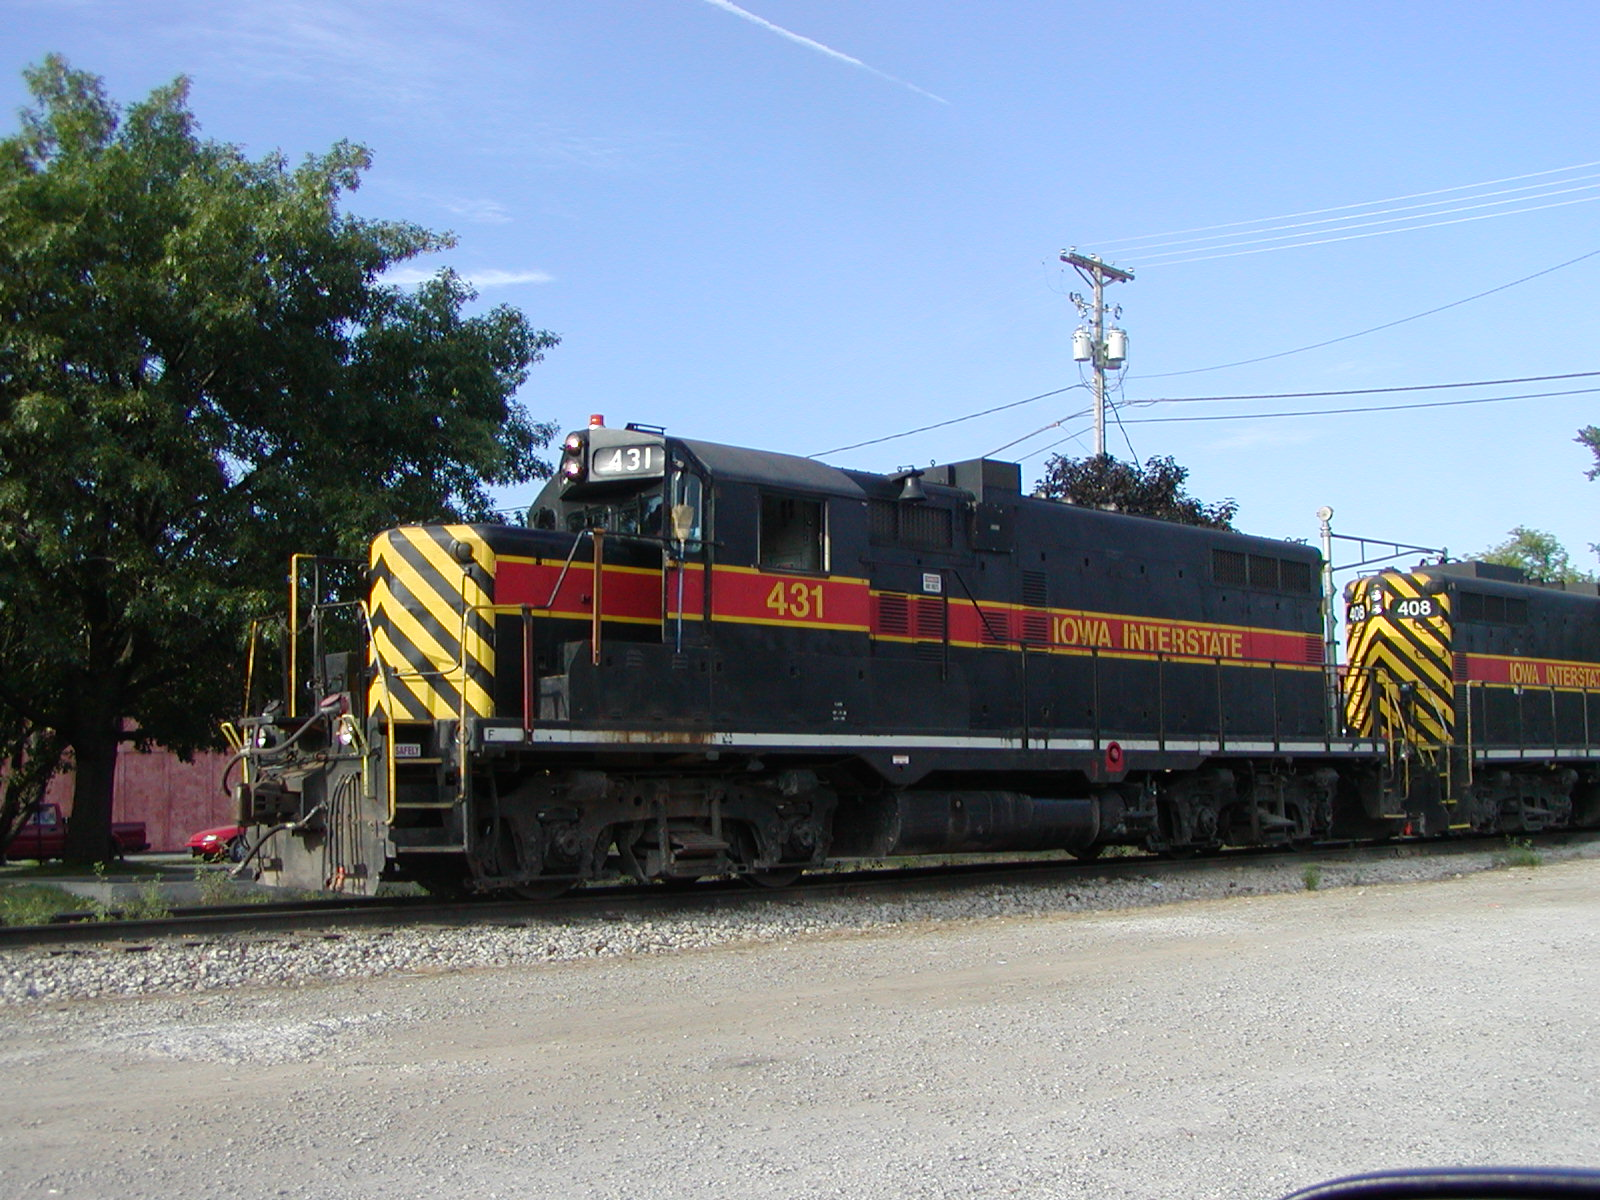 IAIS 431 at Iowa City, IA on 18-Jul-2001